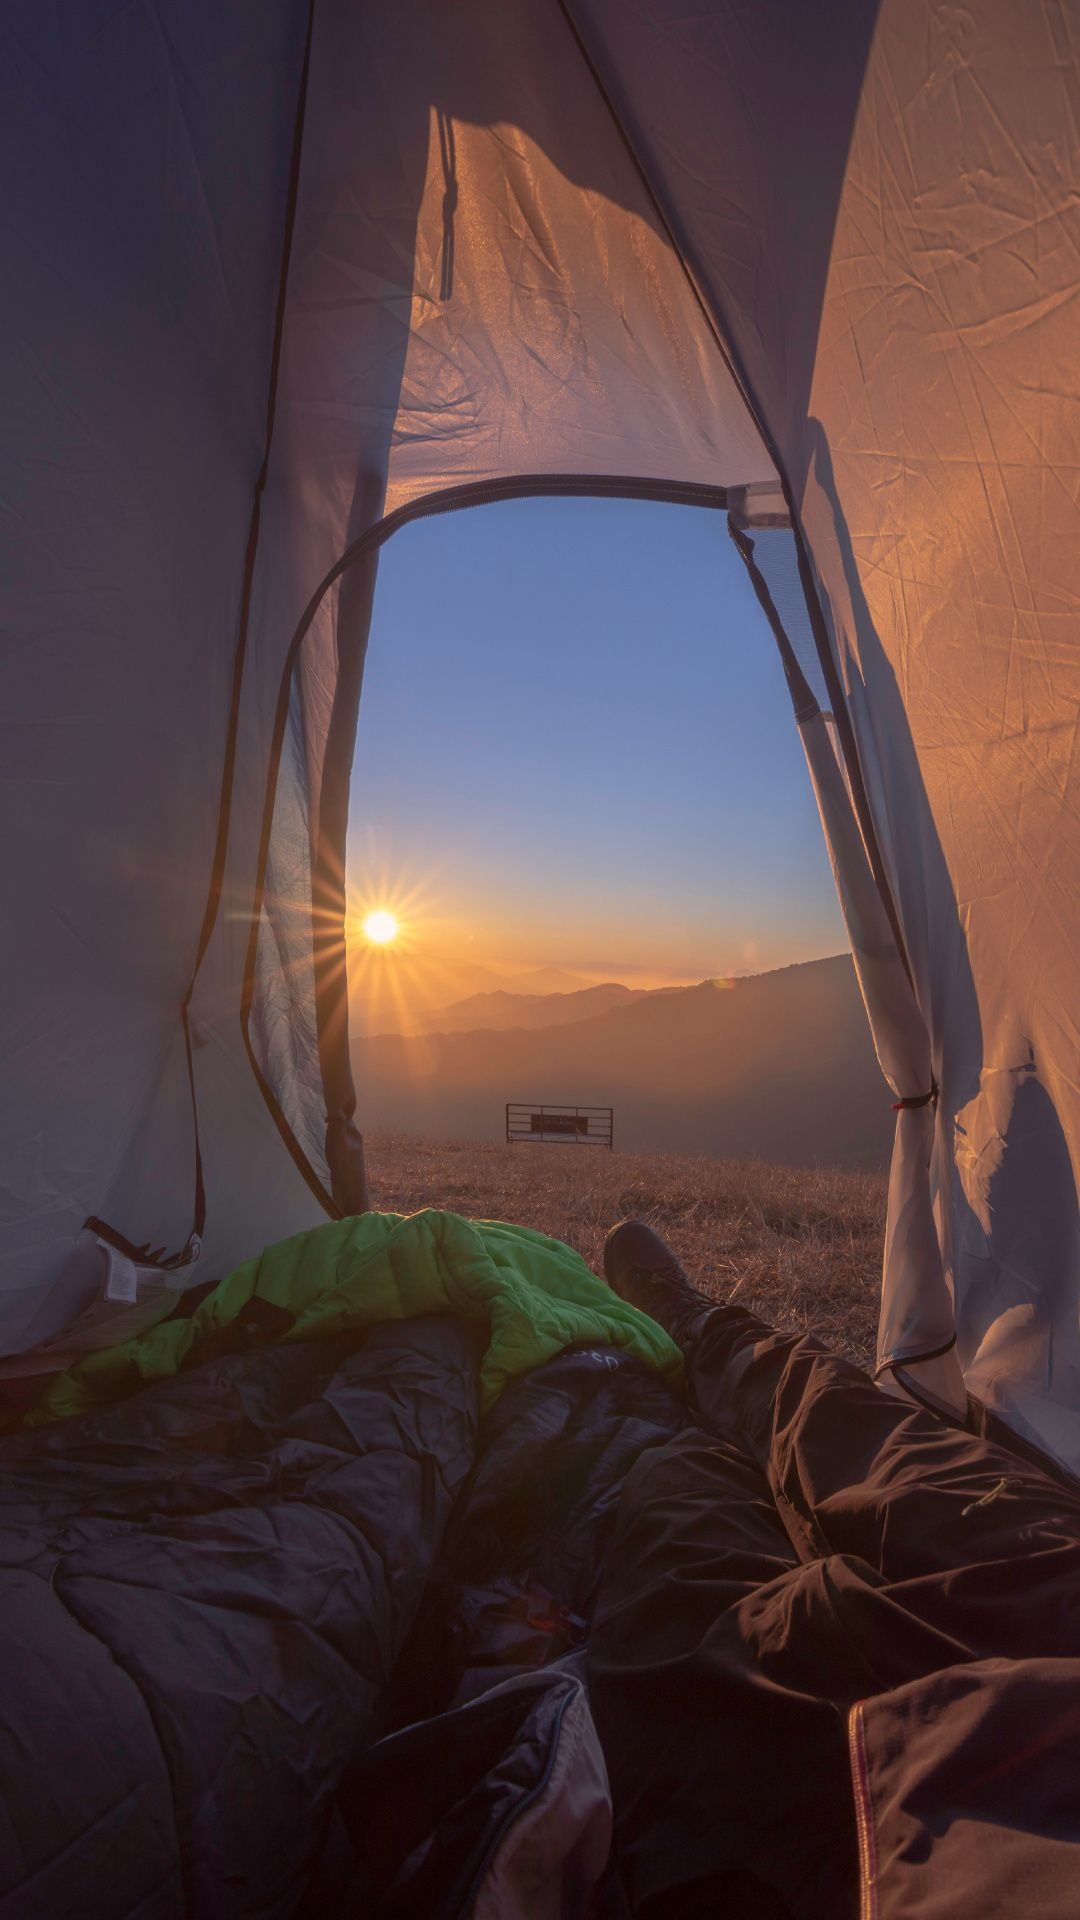 Wallpapers Sunrise Morning Tourism Camping Tent Camping Wallpaper Camping Photography Tent